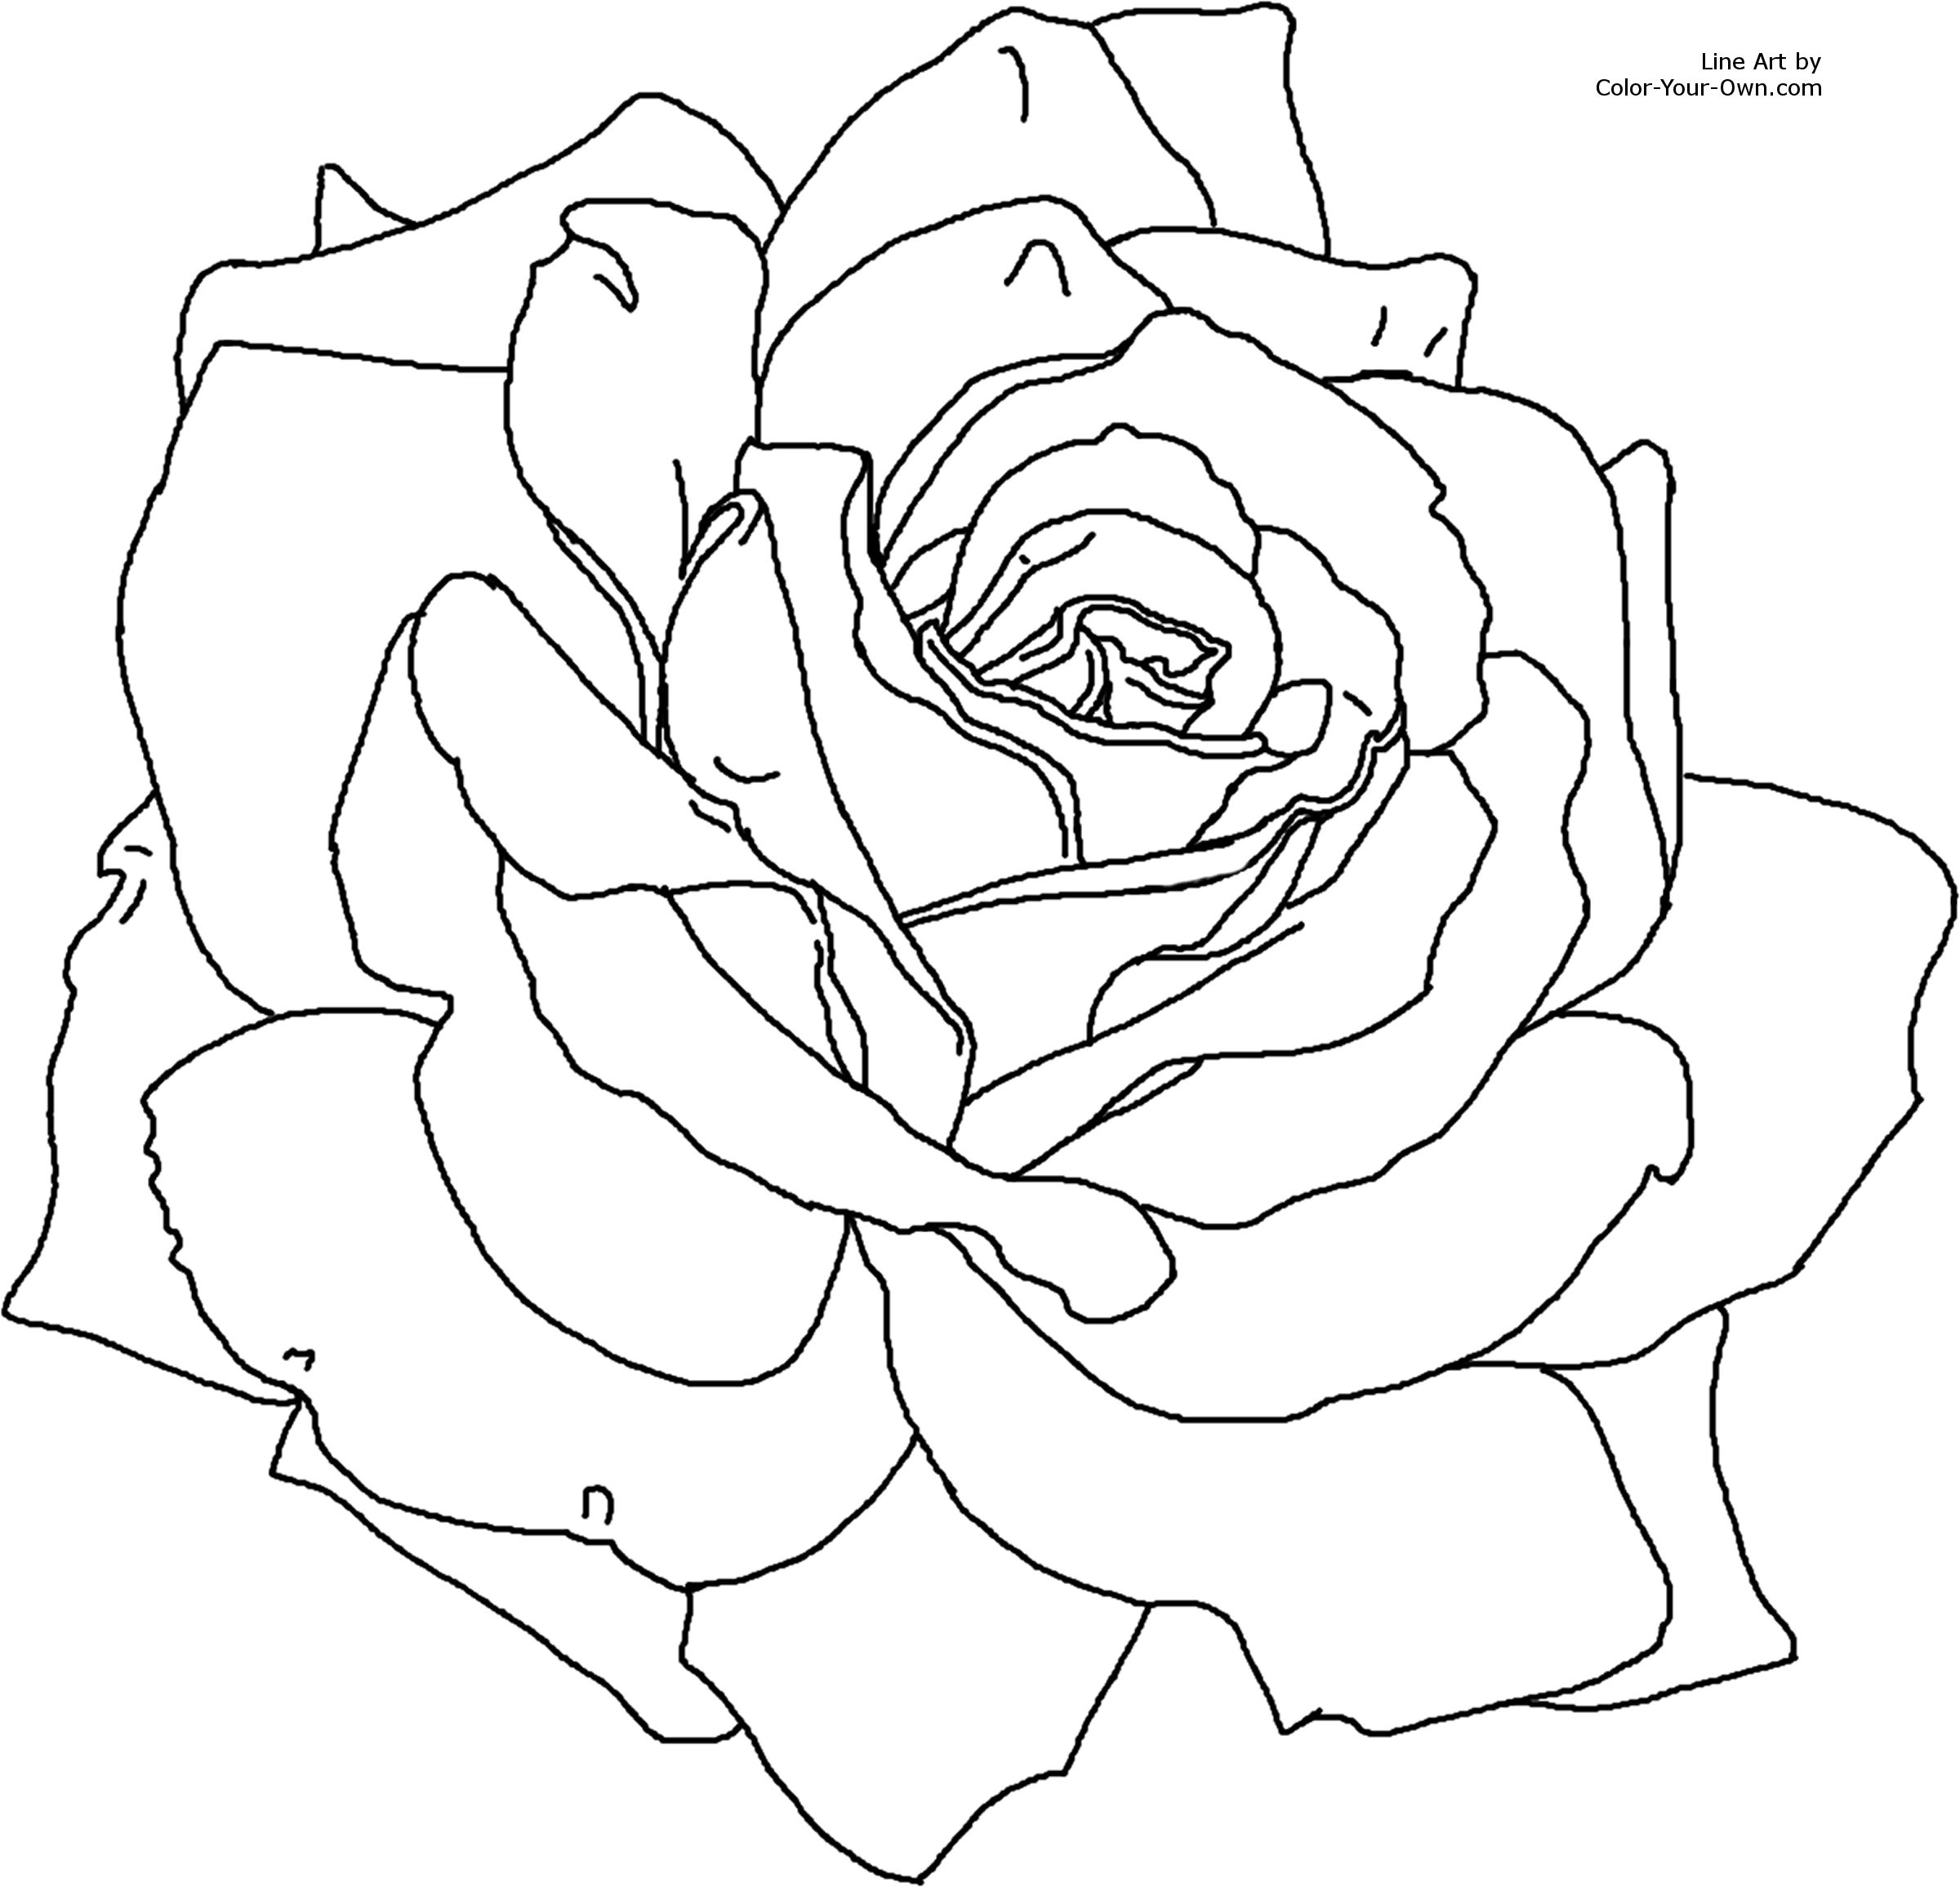 rose coloring pages to print printable rose coloring pages for kids cool2bkids rose coloring pages print to